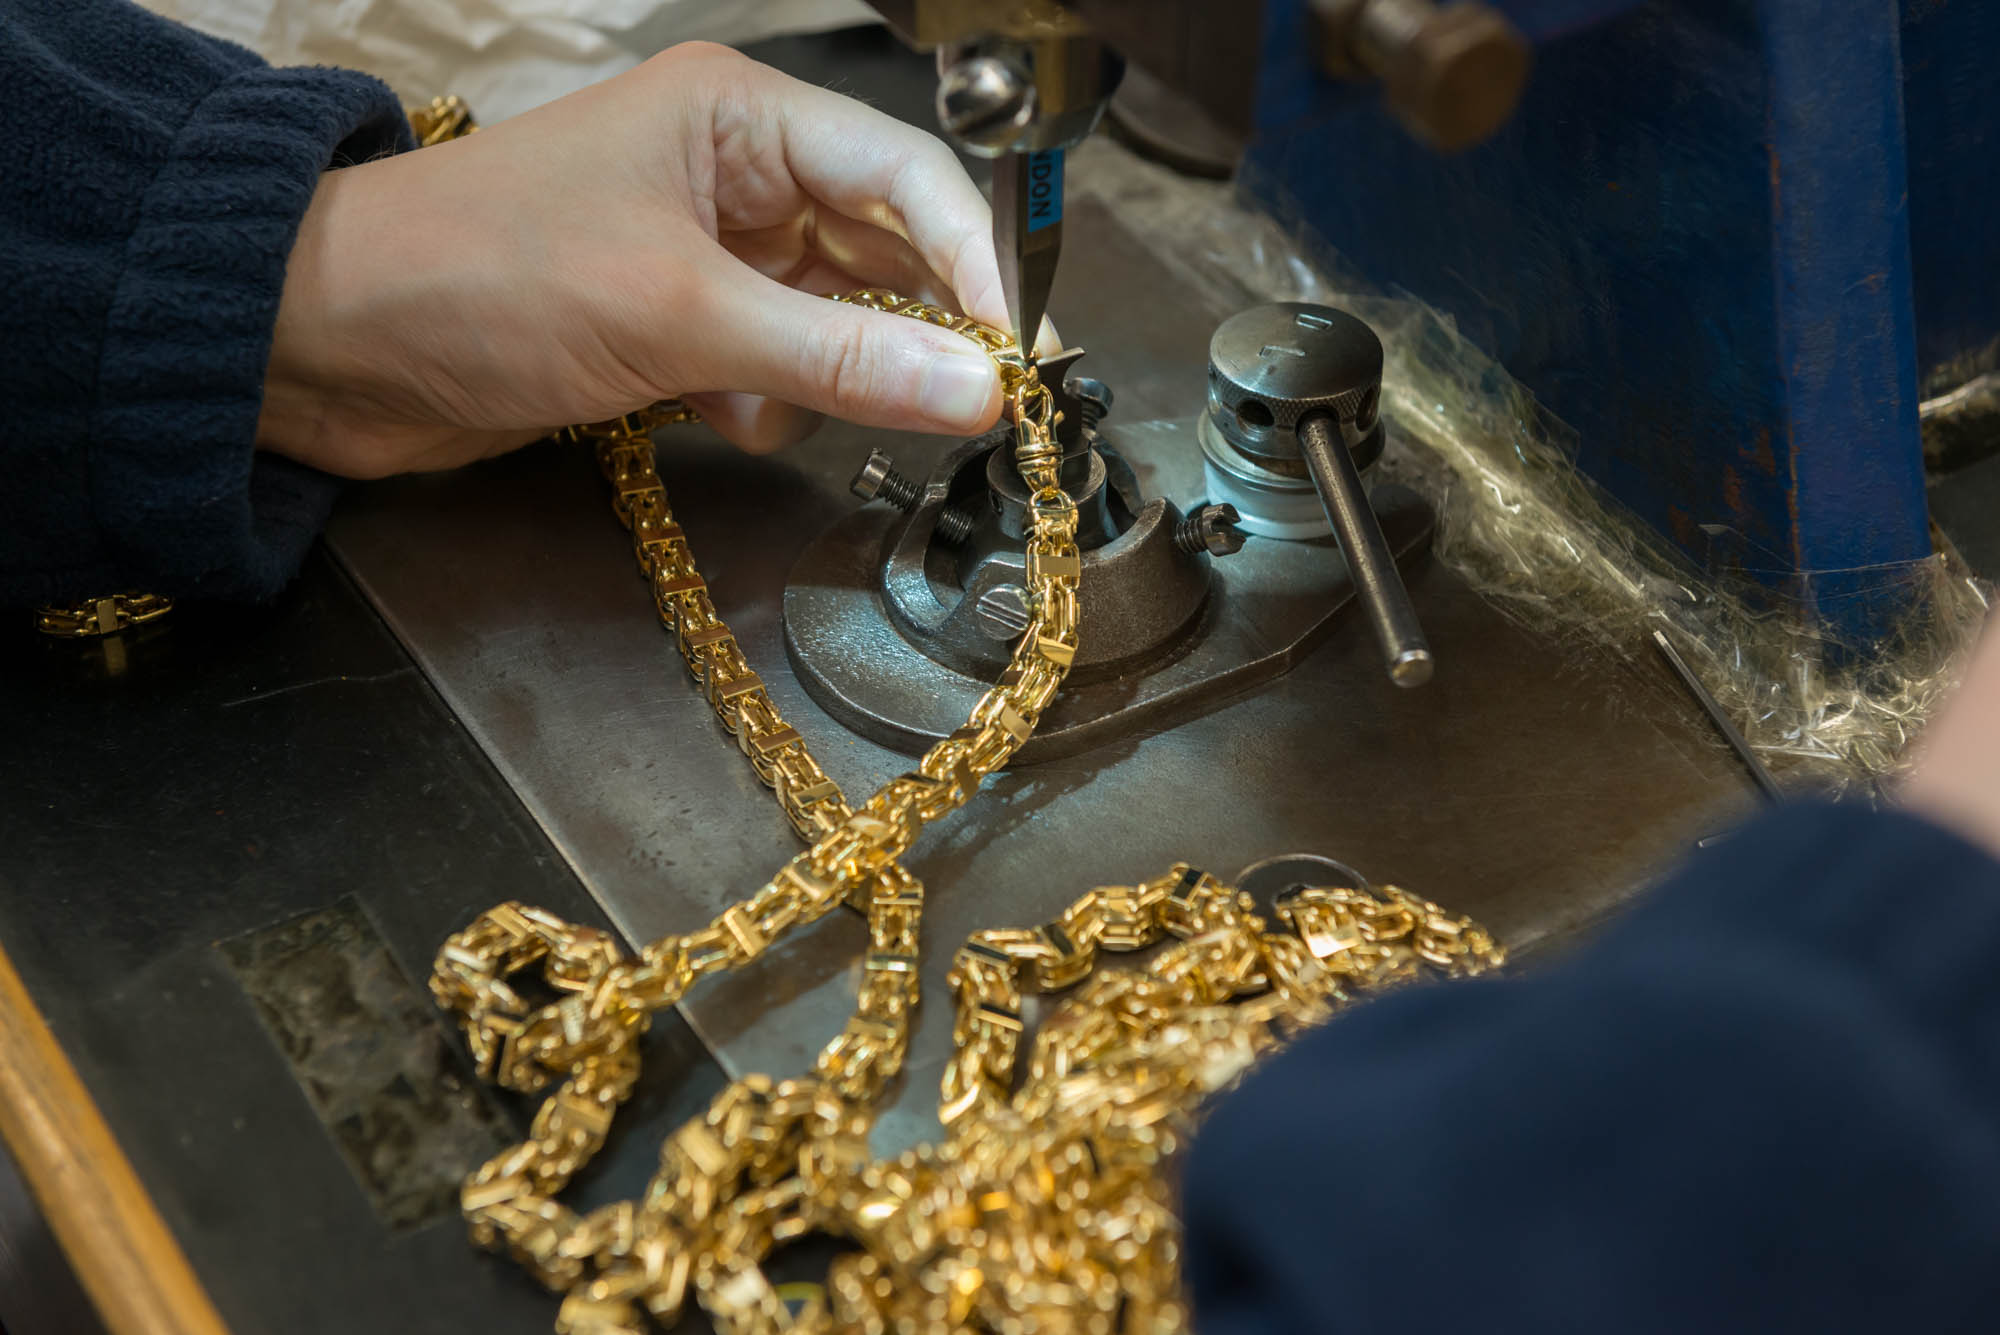 Gold chain being marked on fly press